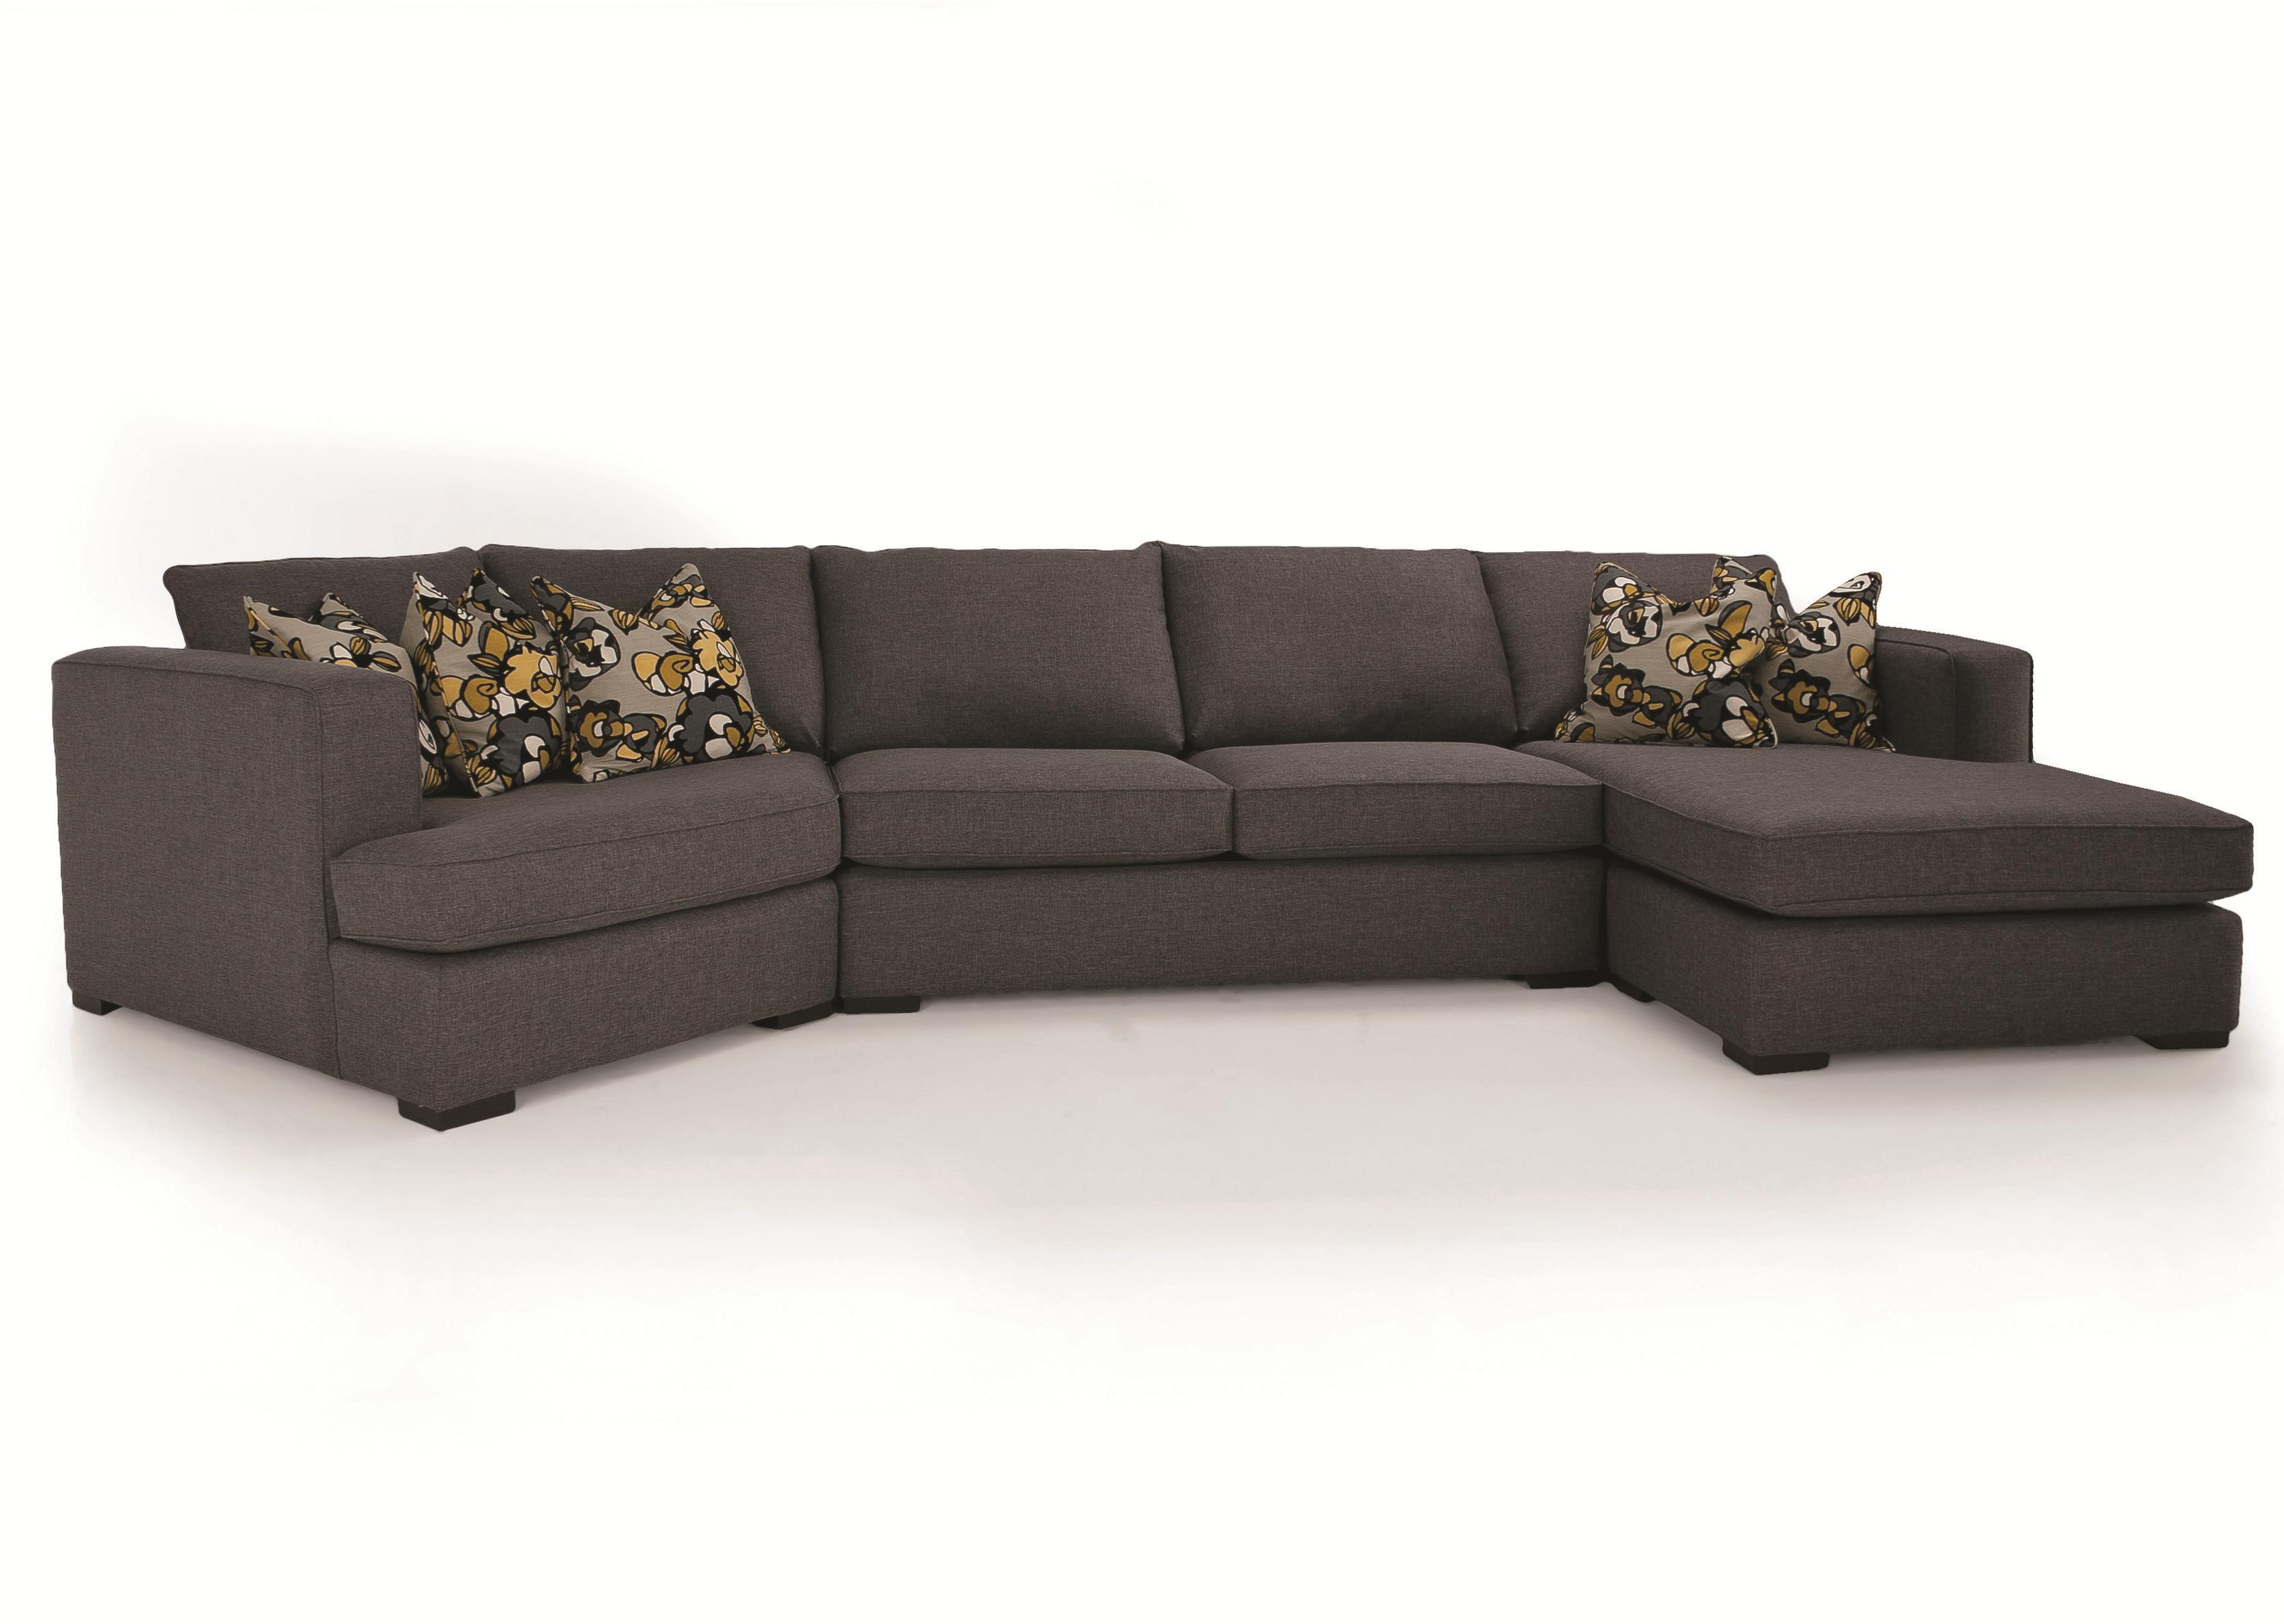 2900 3 pc. Sectional by Decor-Rest at Rooms for Less